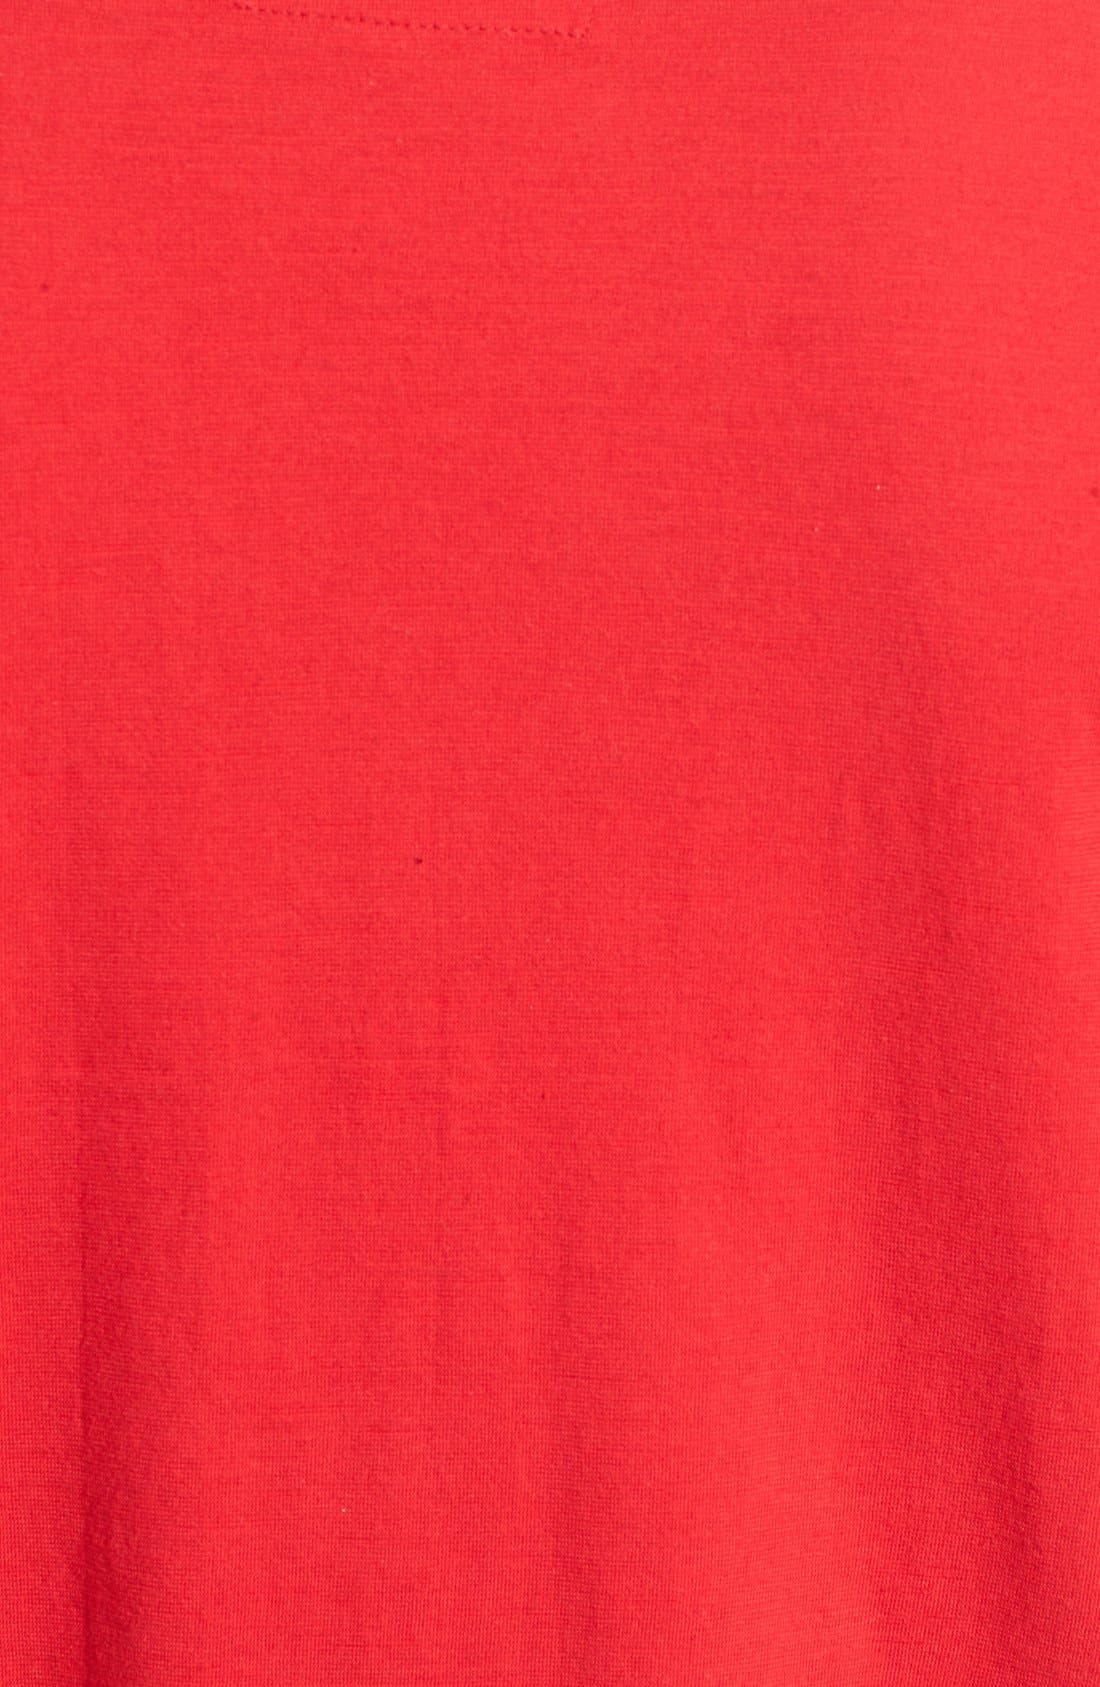 'Cincinnati Reds - Twofold' Crewneck T-Shirt,                             Alternate thumbnail 5, color,                             Red